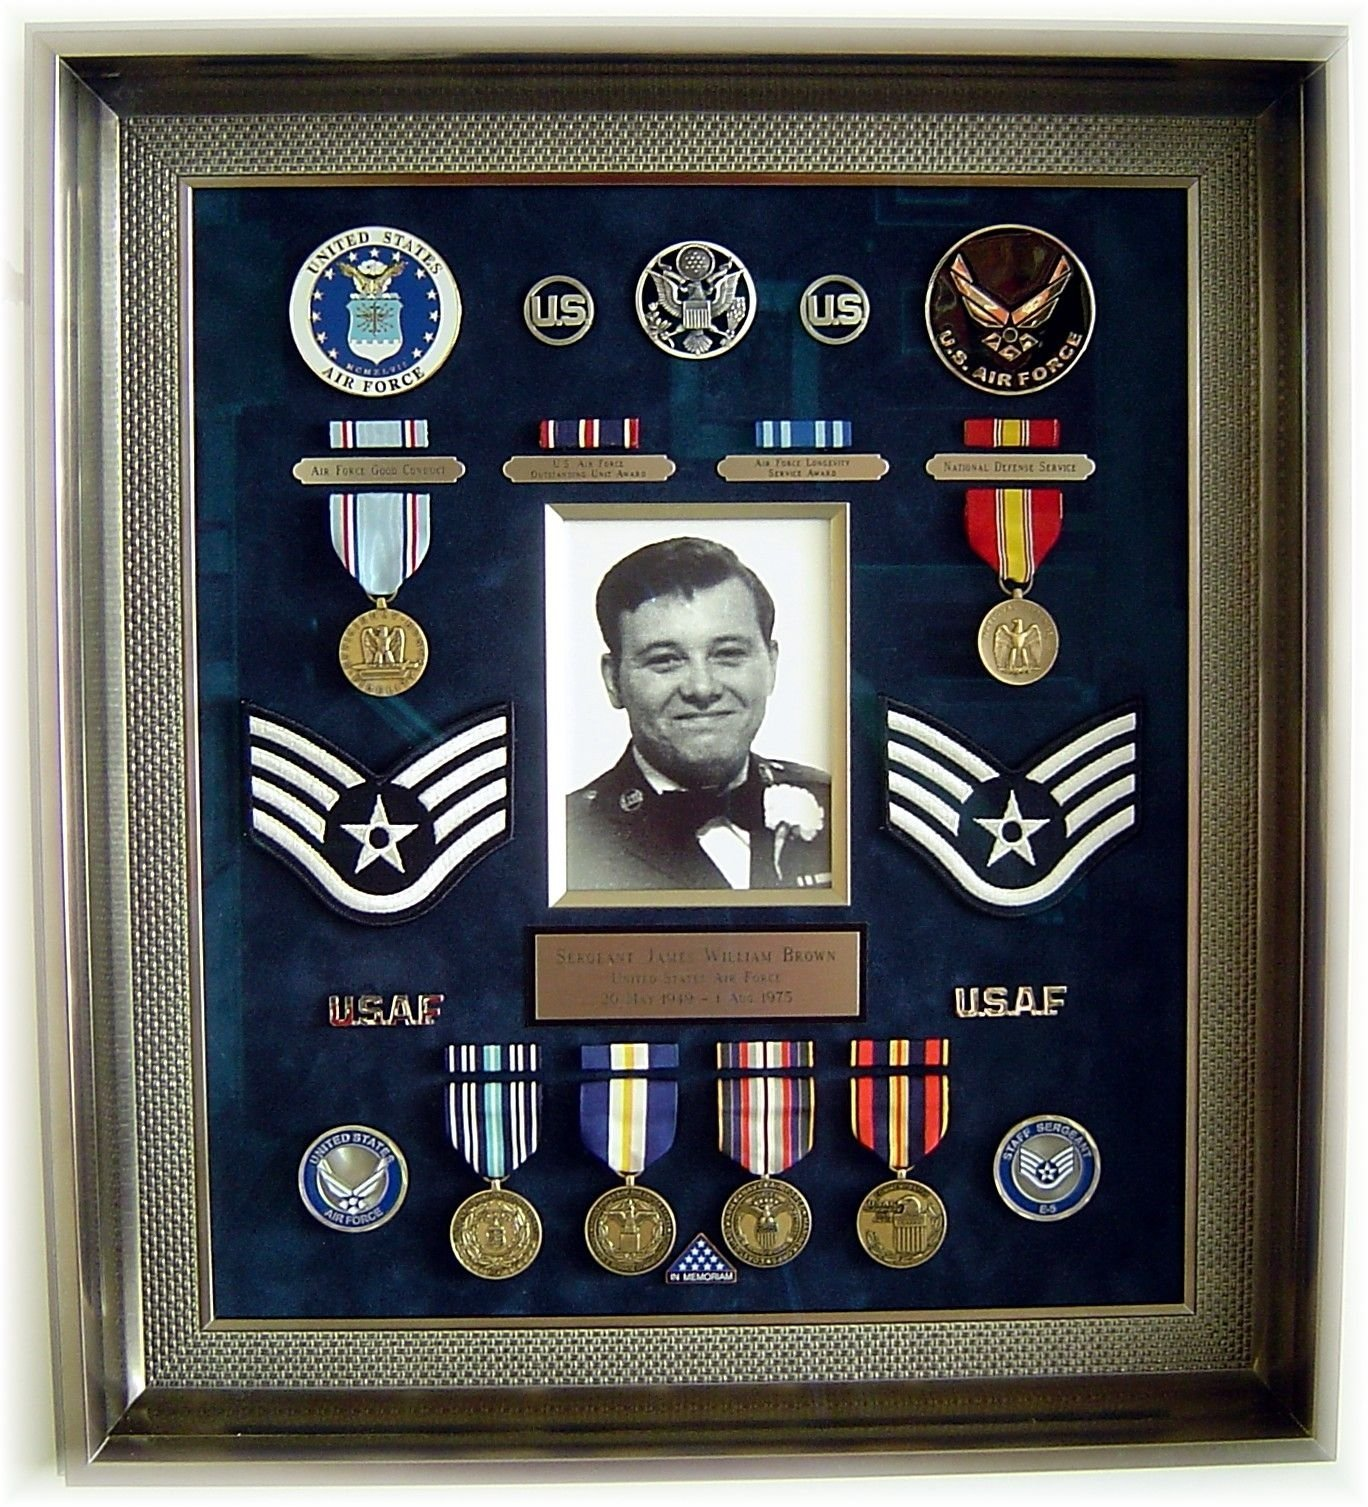 10 Gorgeous Military Retirement Shadow Box Ideas 20 shadow box ideas cute and creative displaying meaningful 1 2020